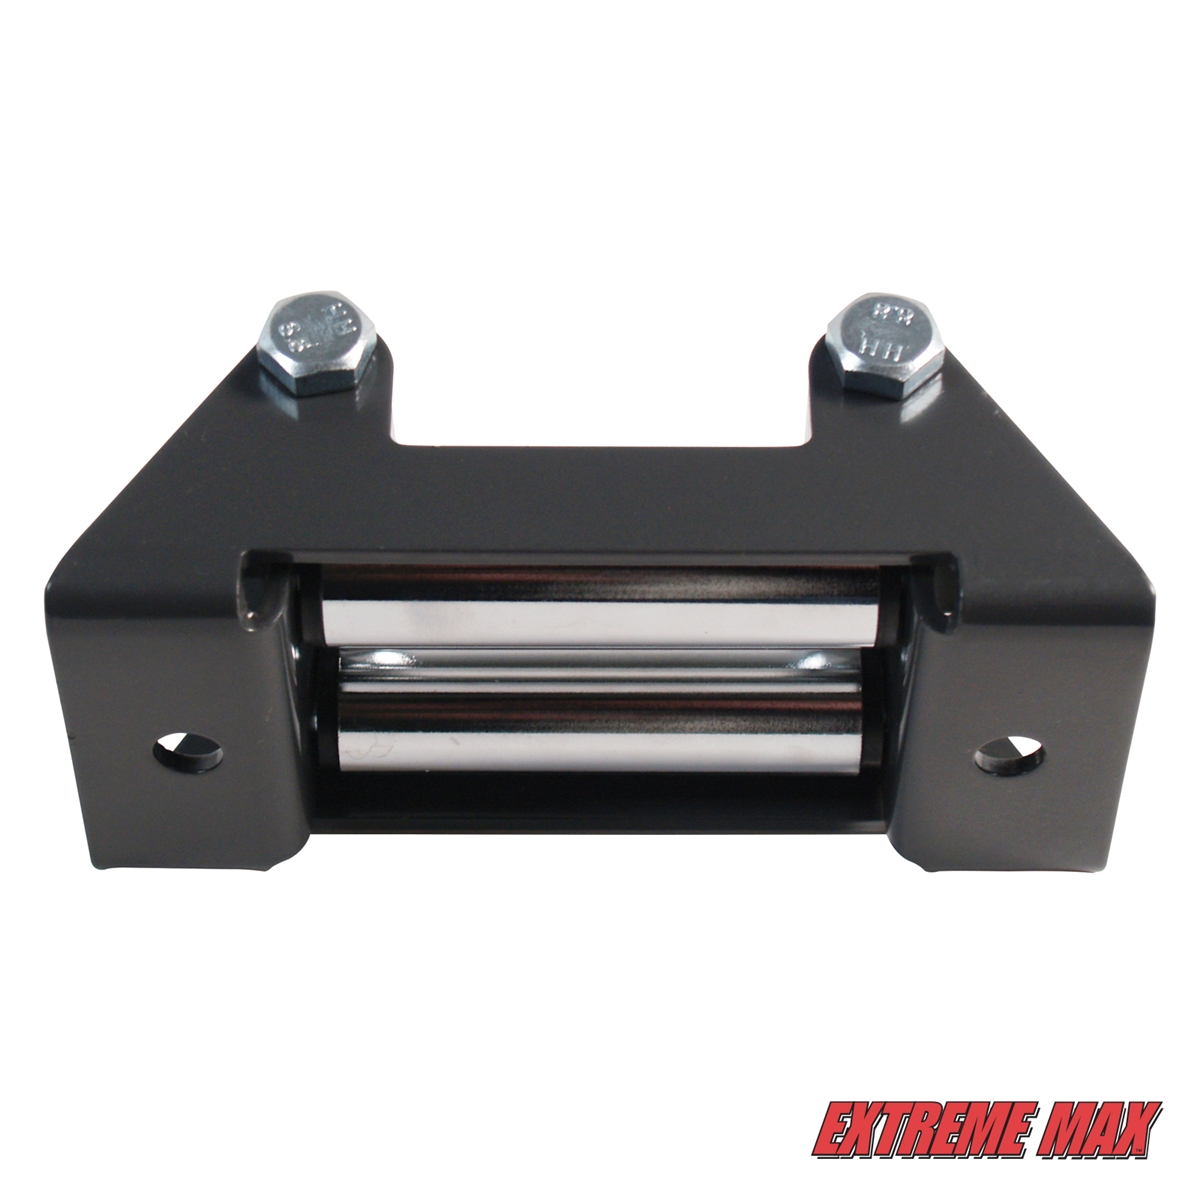 Extreme Max 5600 3007 Bear Claw Roller Fairlead